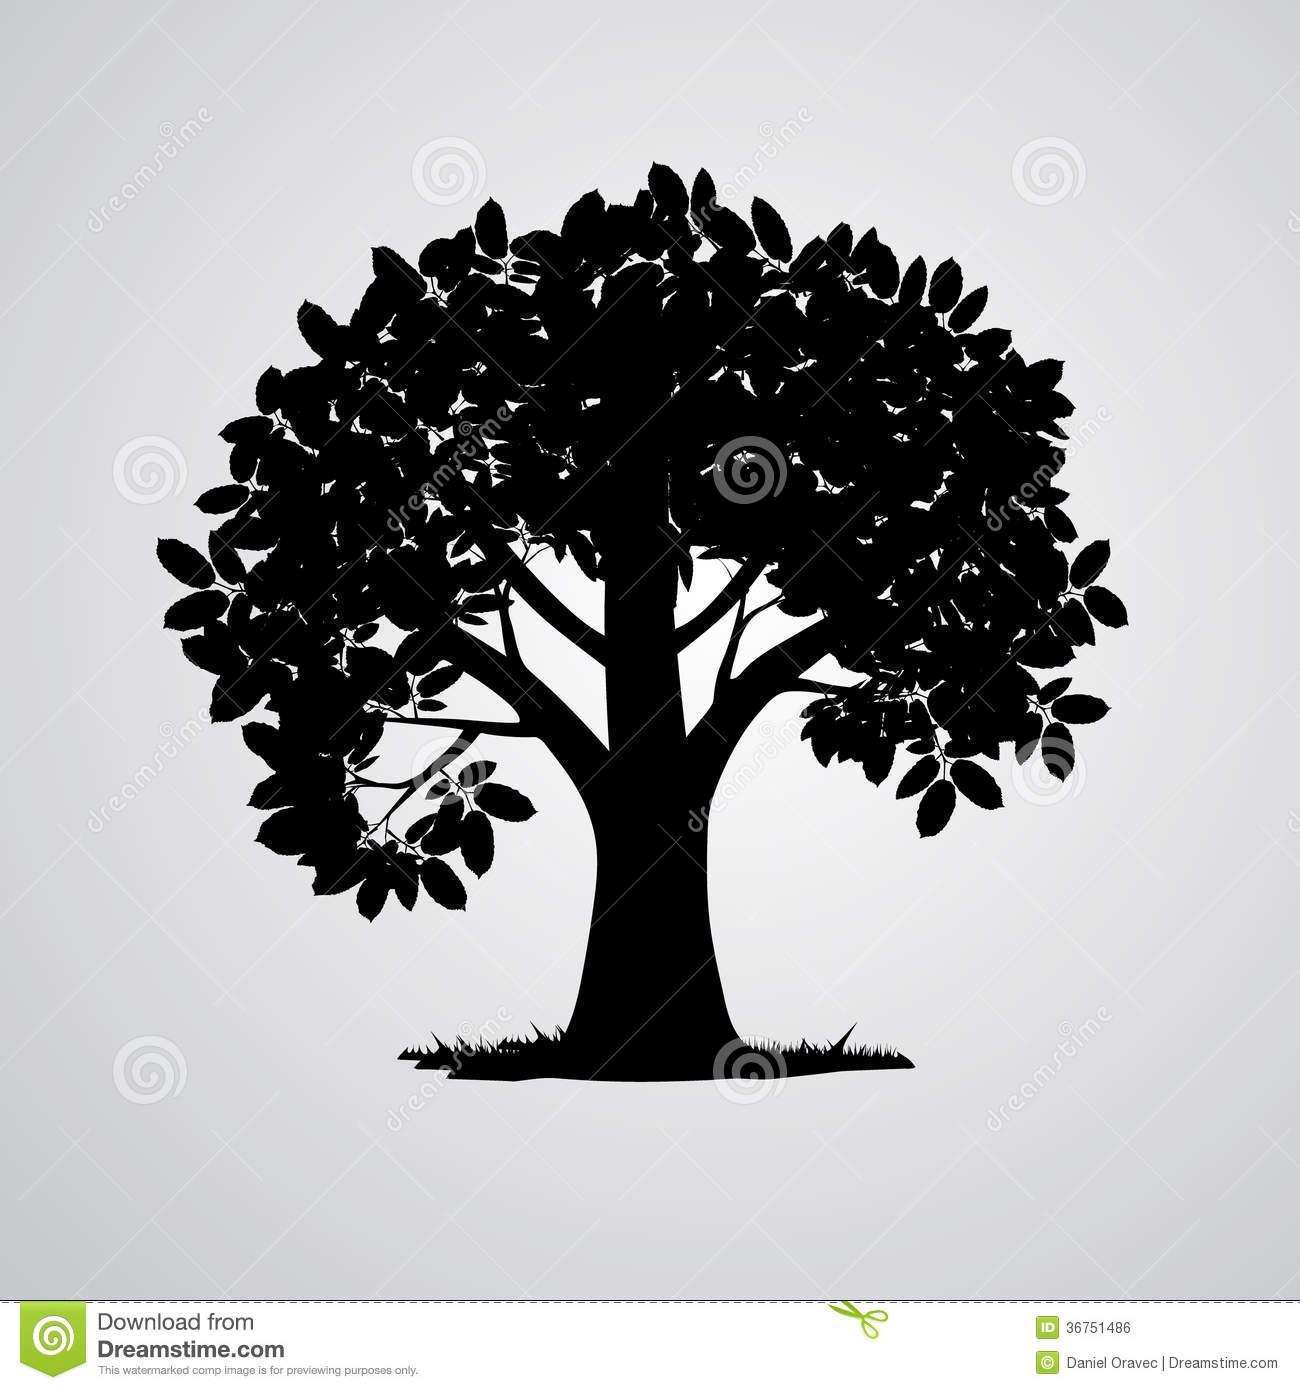 Vector Black Tree Silhouette Royalty Free Stock Image ...